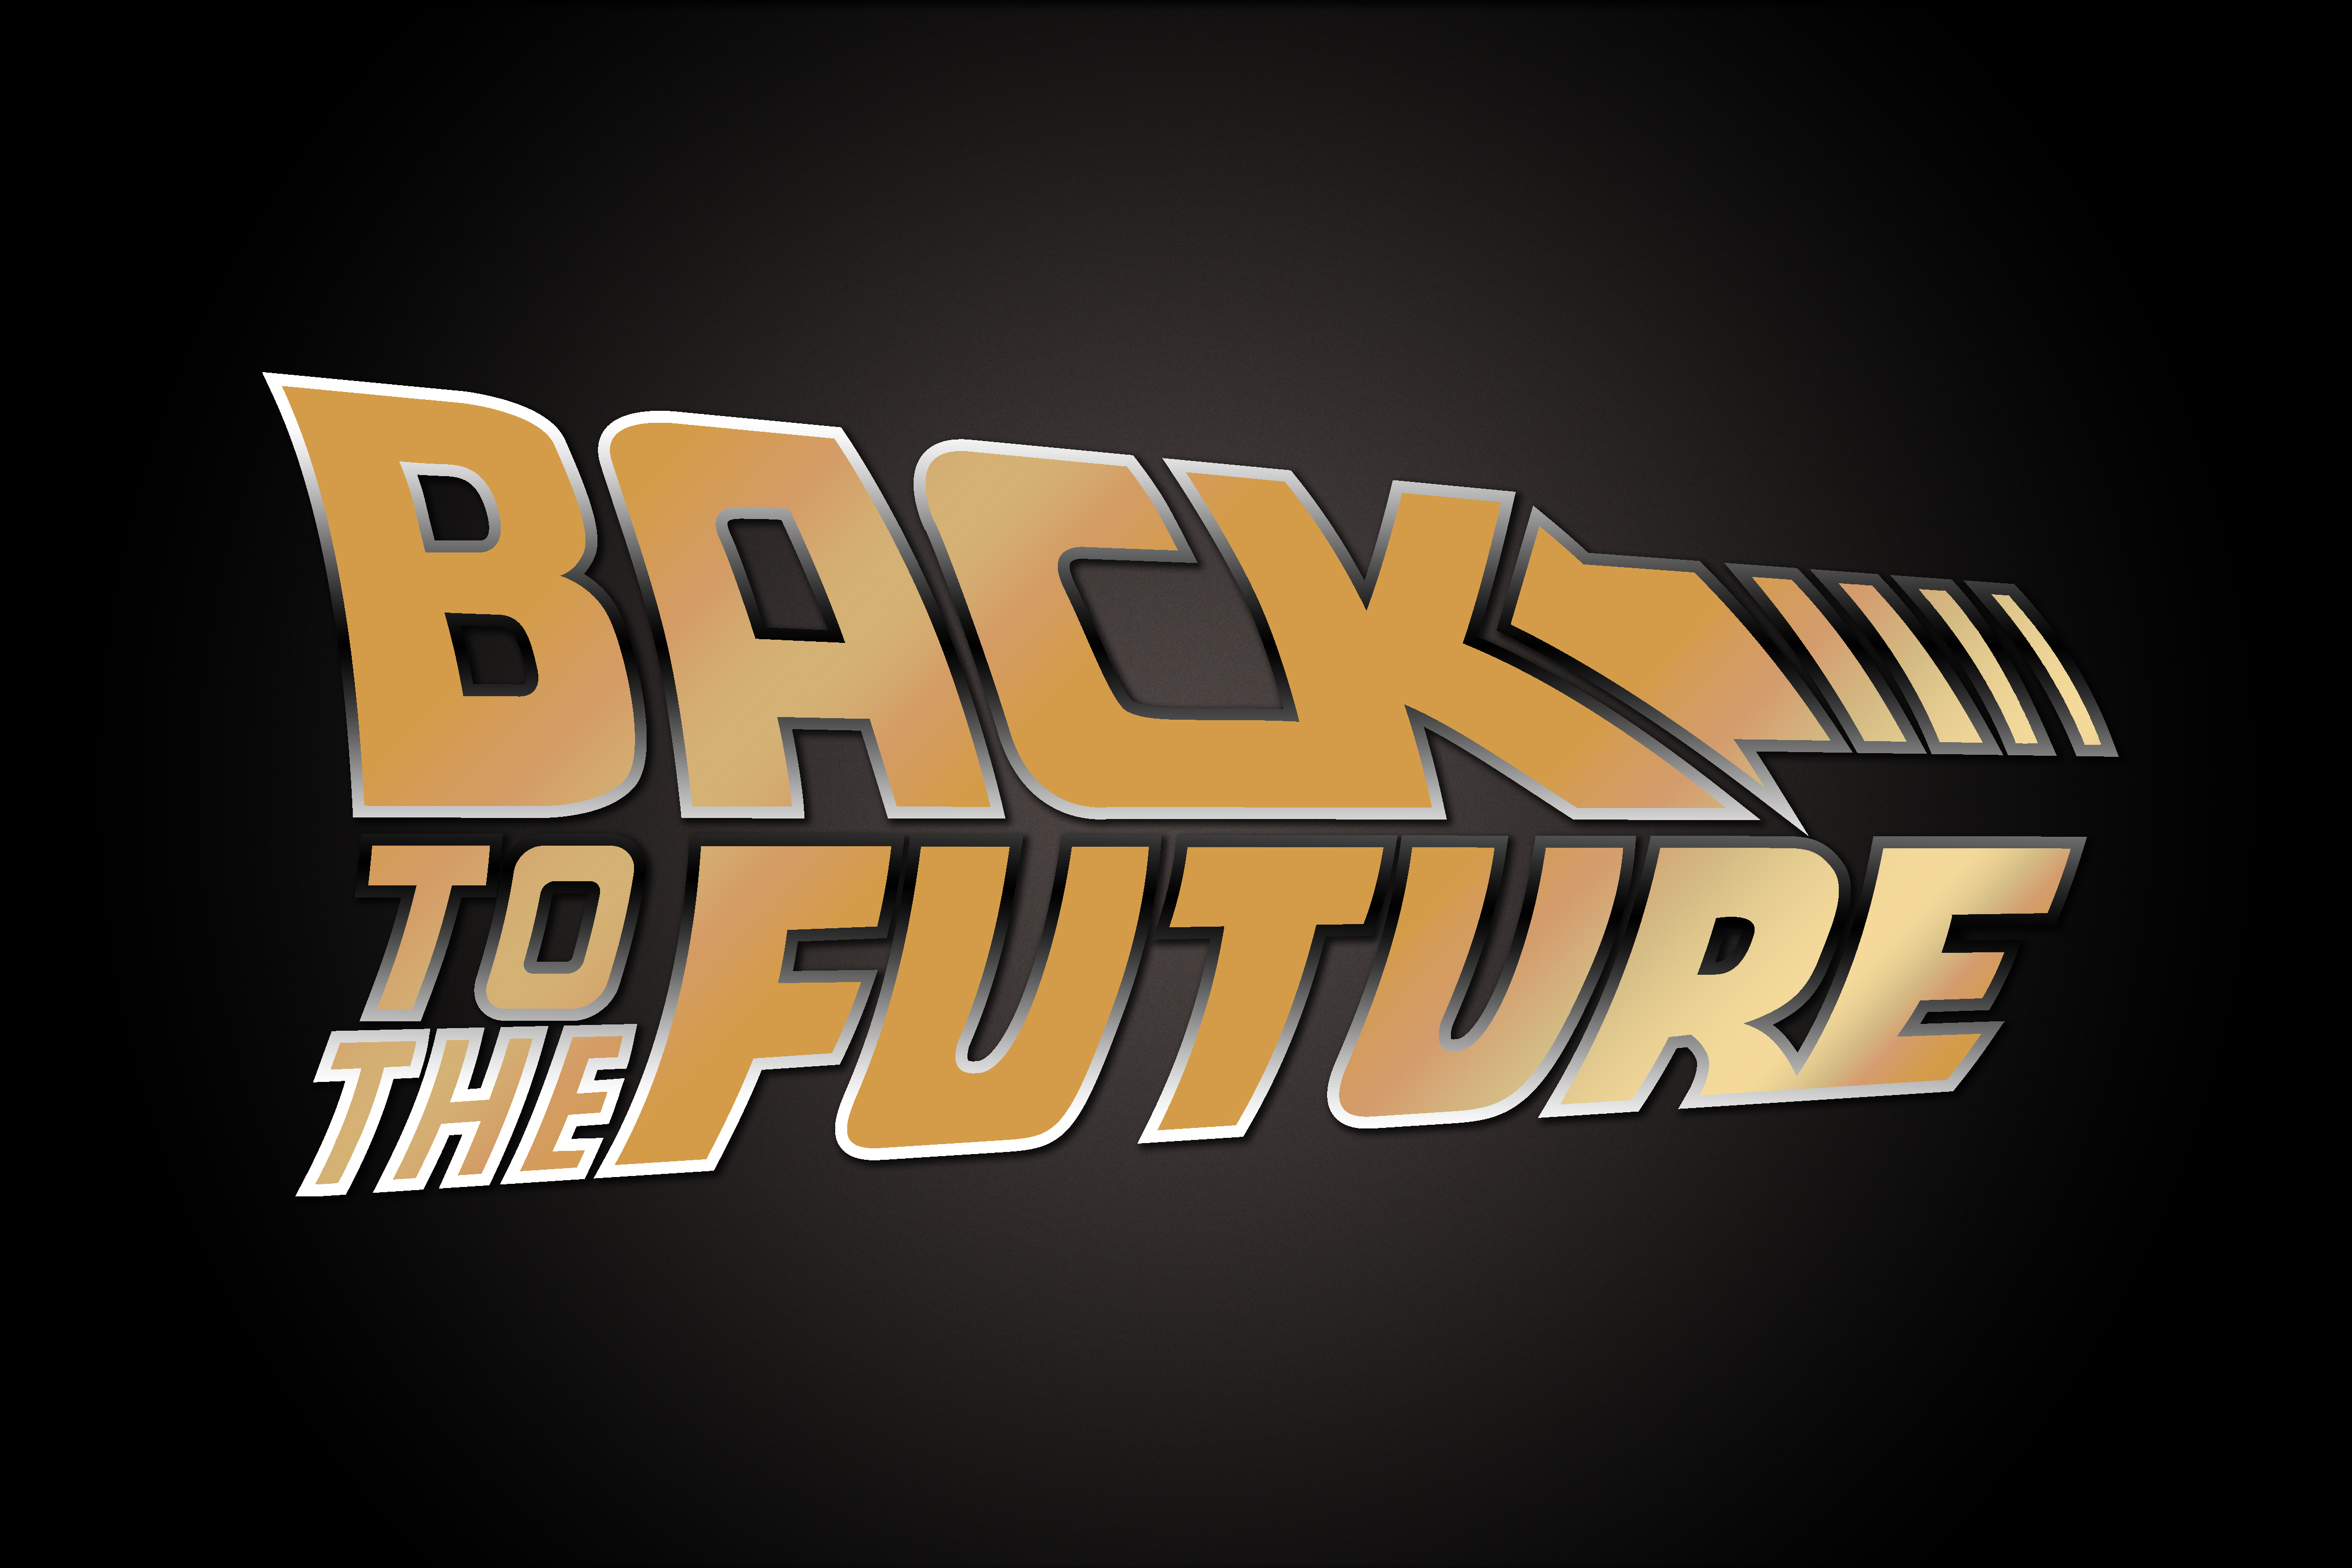 Back To The Future Golden Movie Logo By Freeco On Deviantart